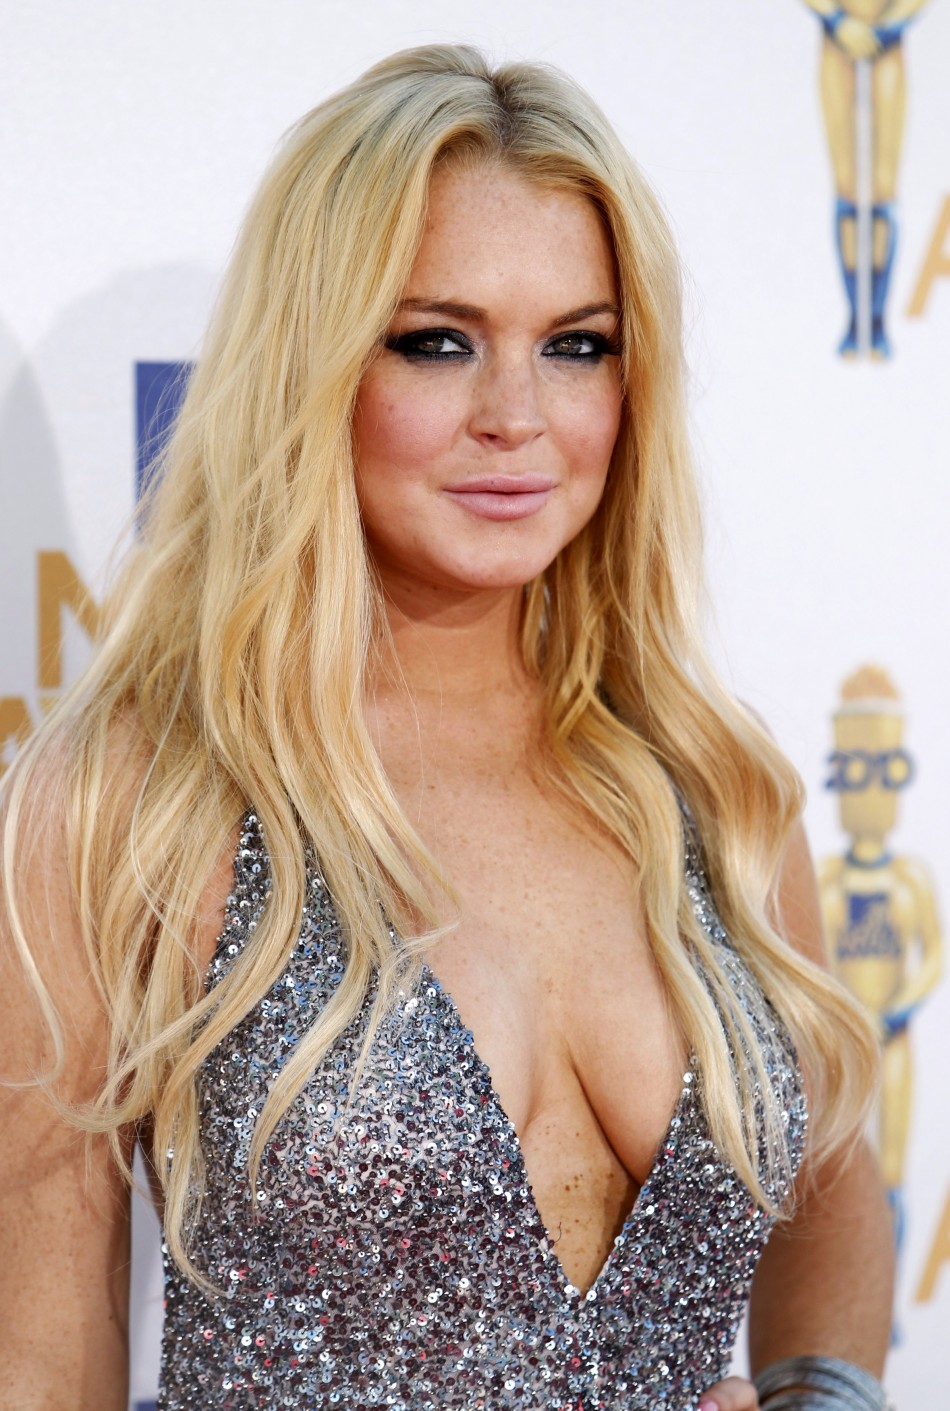 179142 actress lohan arrives at the 2010 mtv movie awards in los angeles That's right, Russian Bear Gay King Putin Won The President Election !